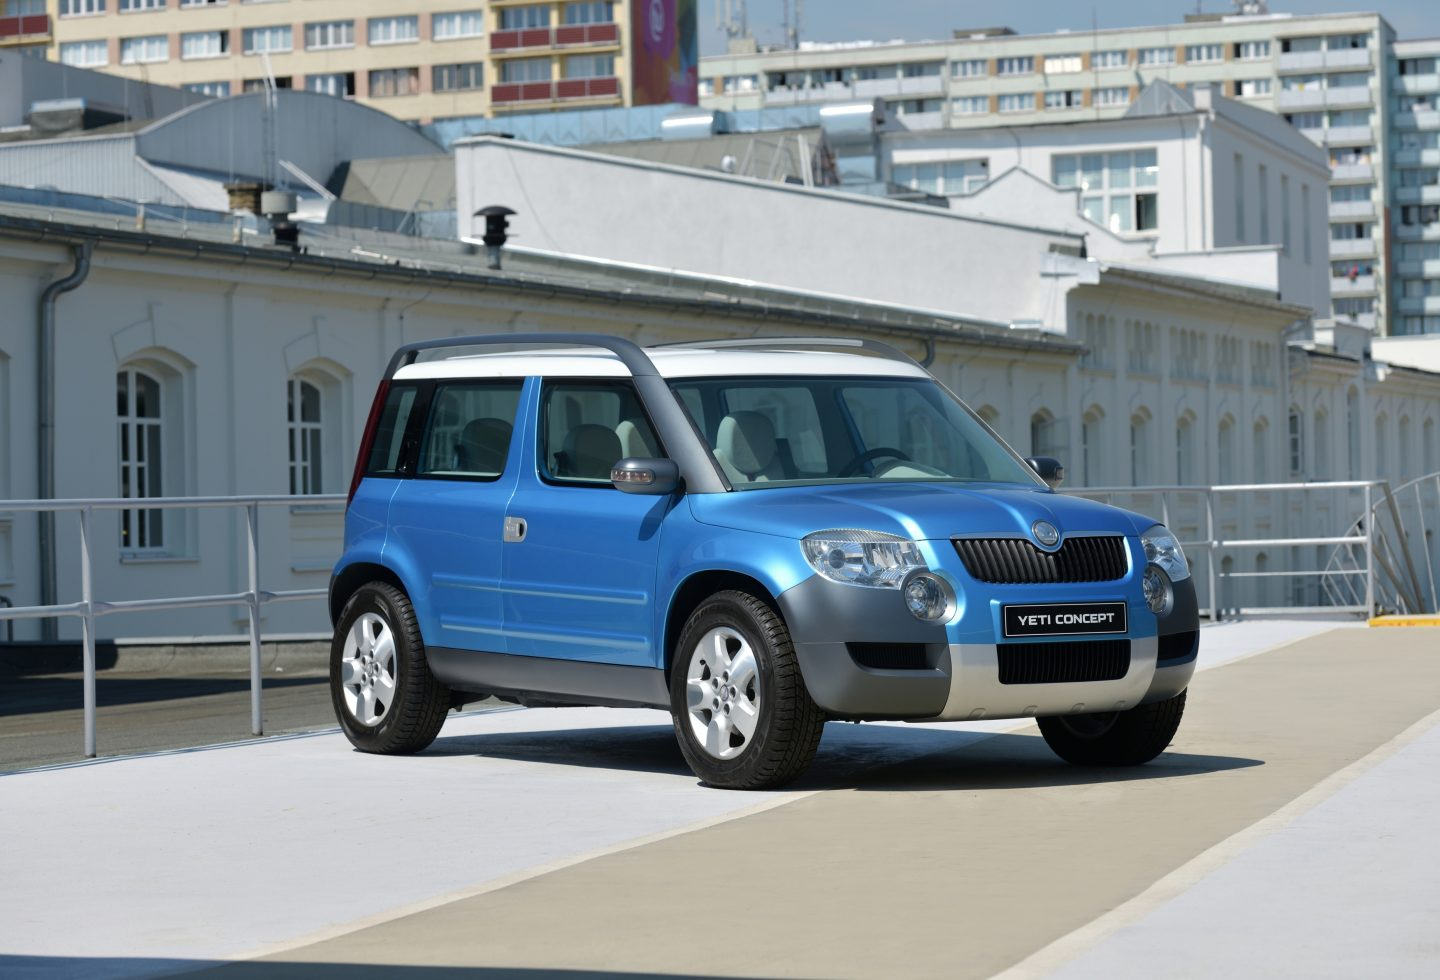 yeti-skoda-photo-exterior-side-view